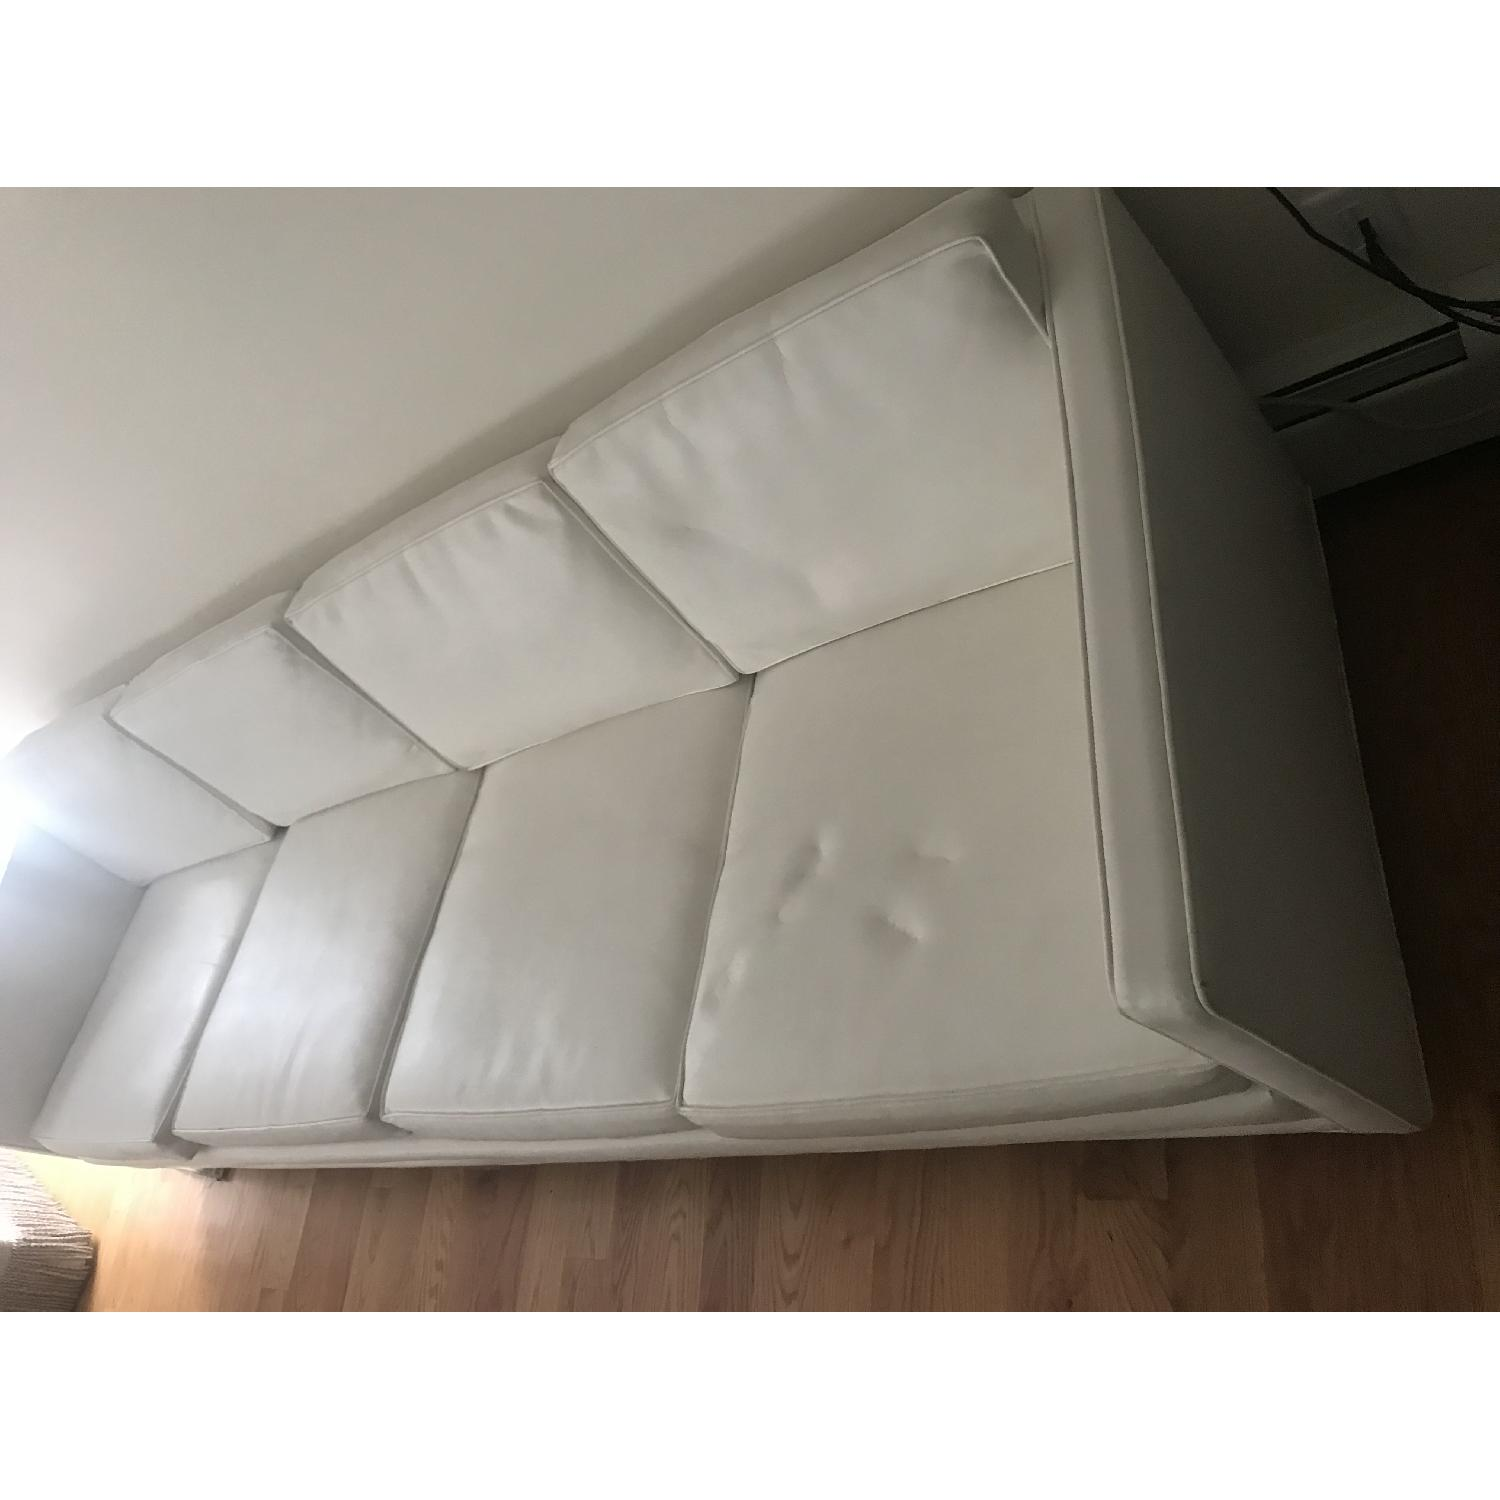 Drexel 1960s White Leather Modern Sofa - image-5